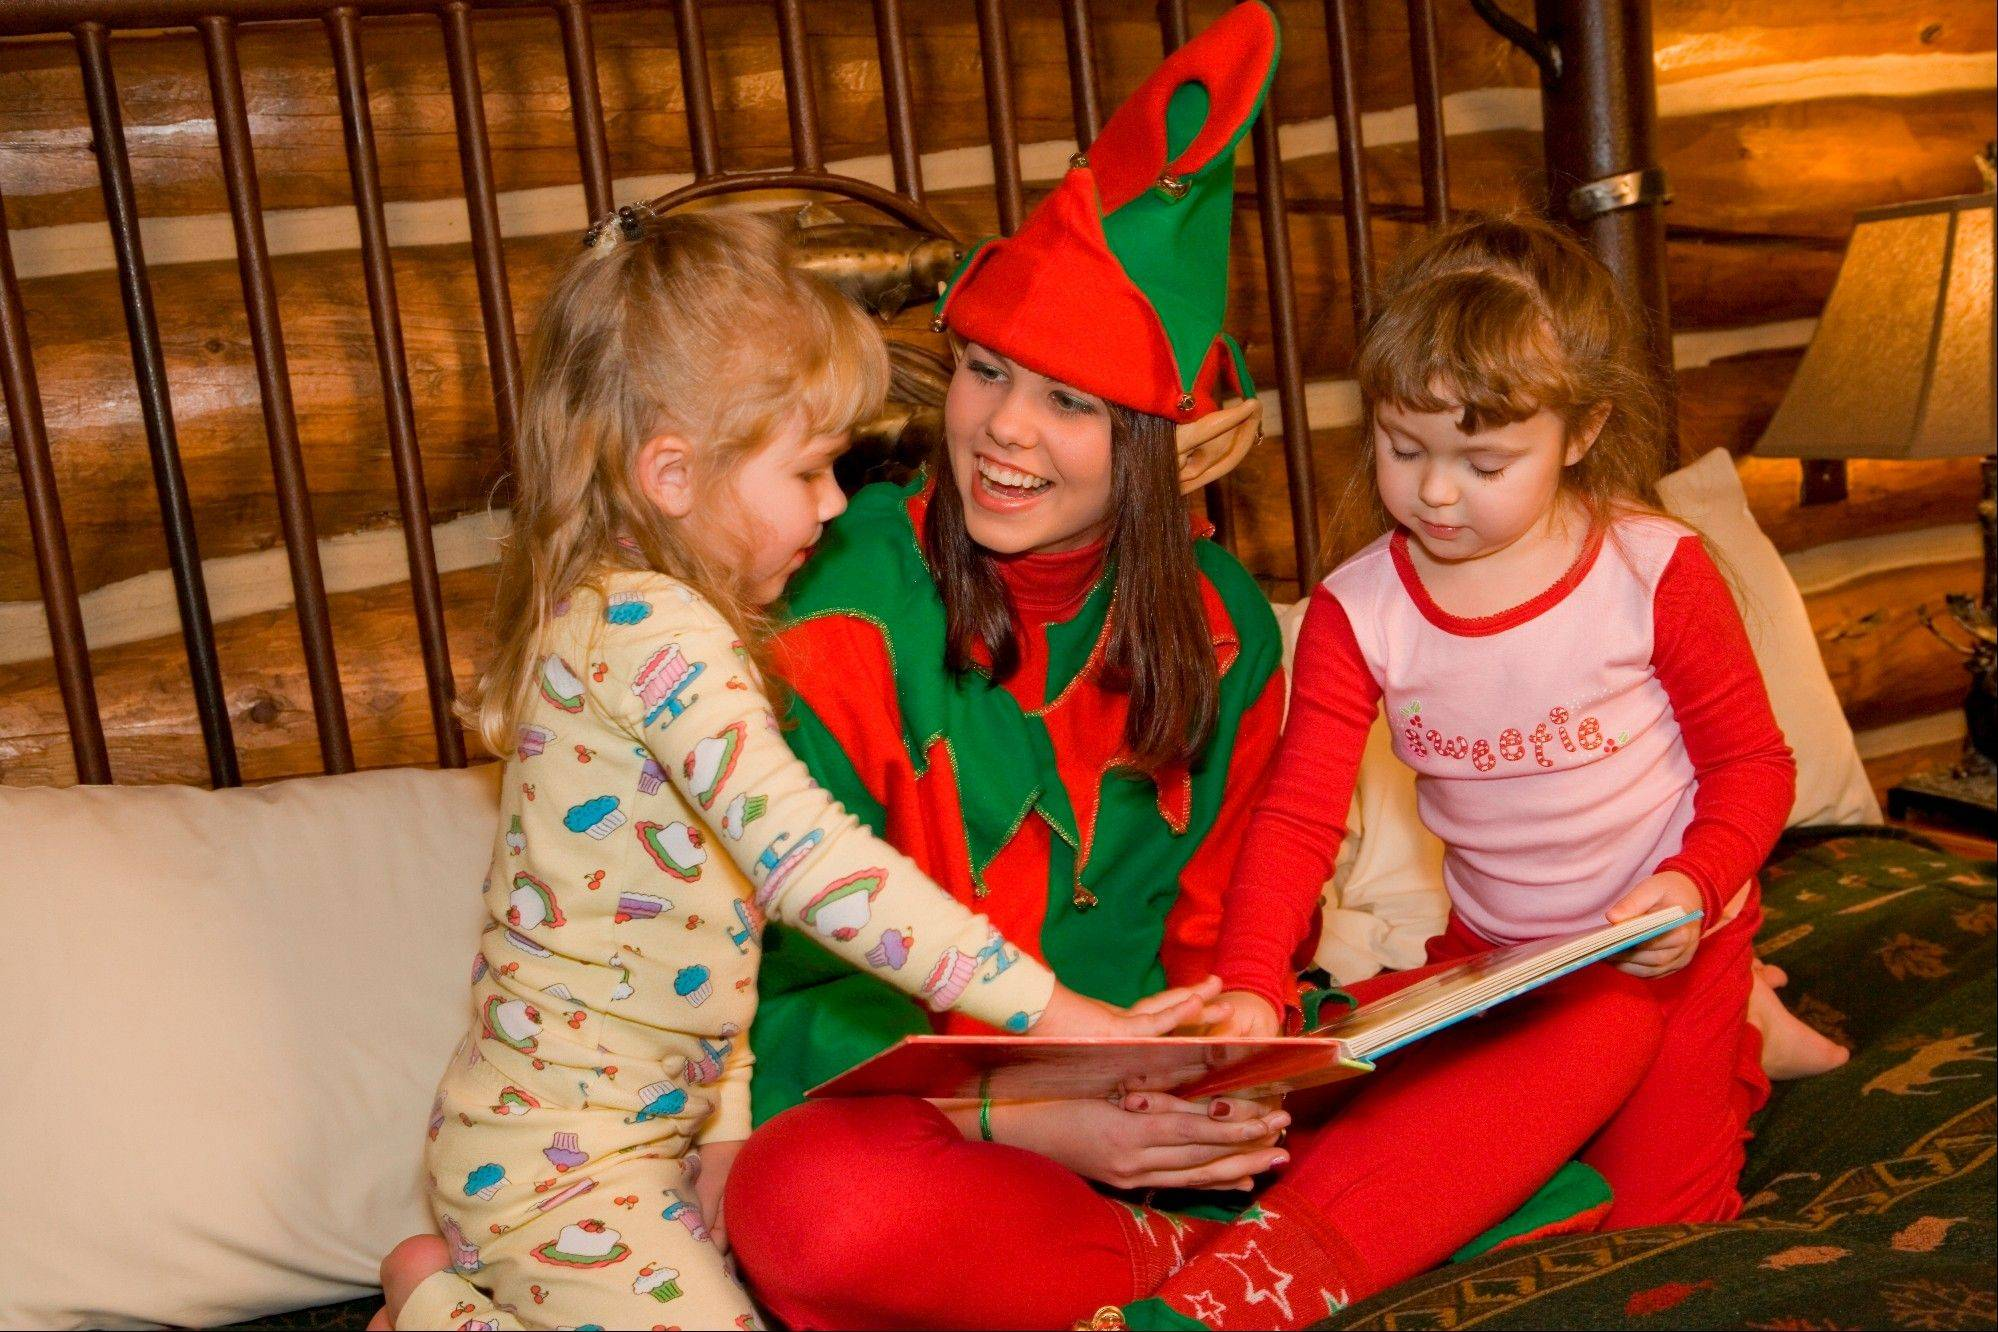 The Christmas Elf reads bedtime stories to children at Big Cedar Lodge near Branson, Mo.